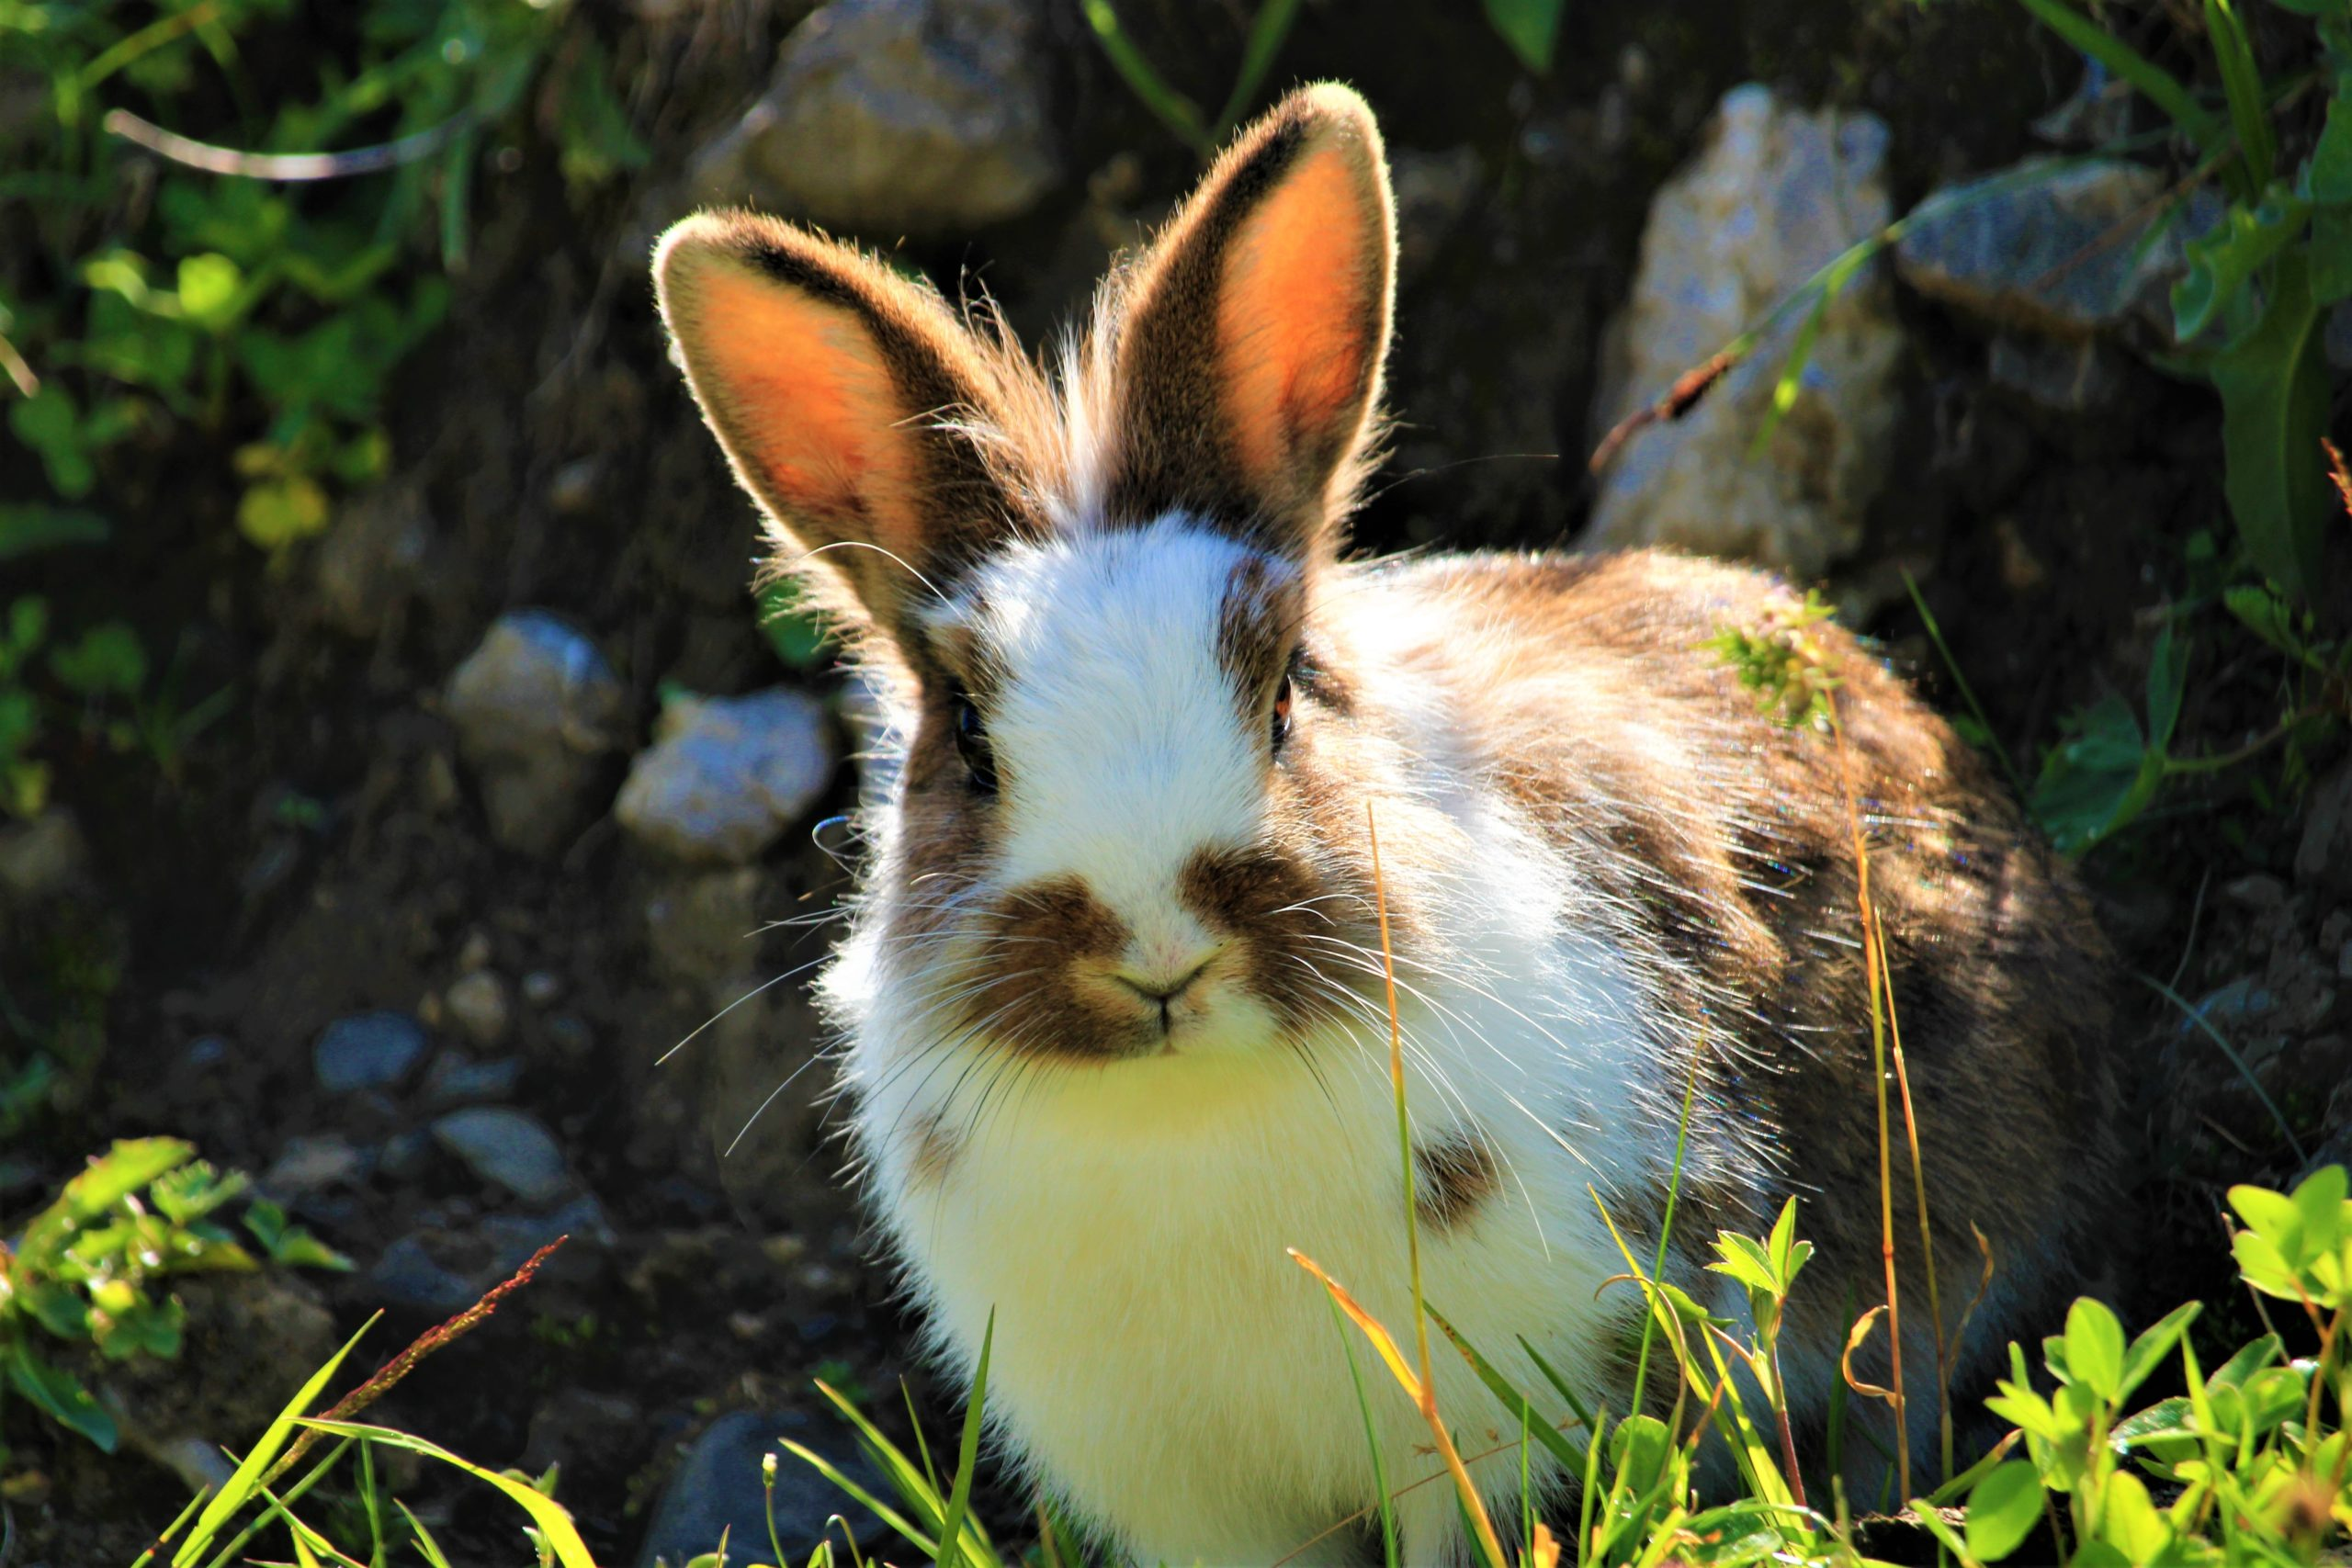 white and brown bunny sitting in grass on a spring day.